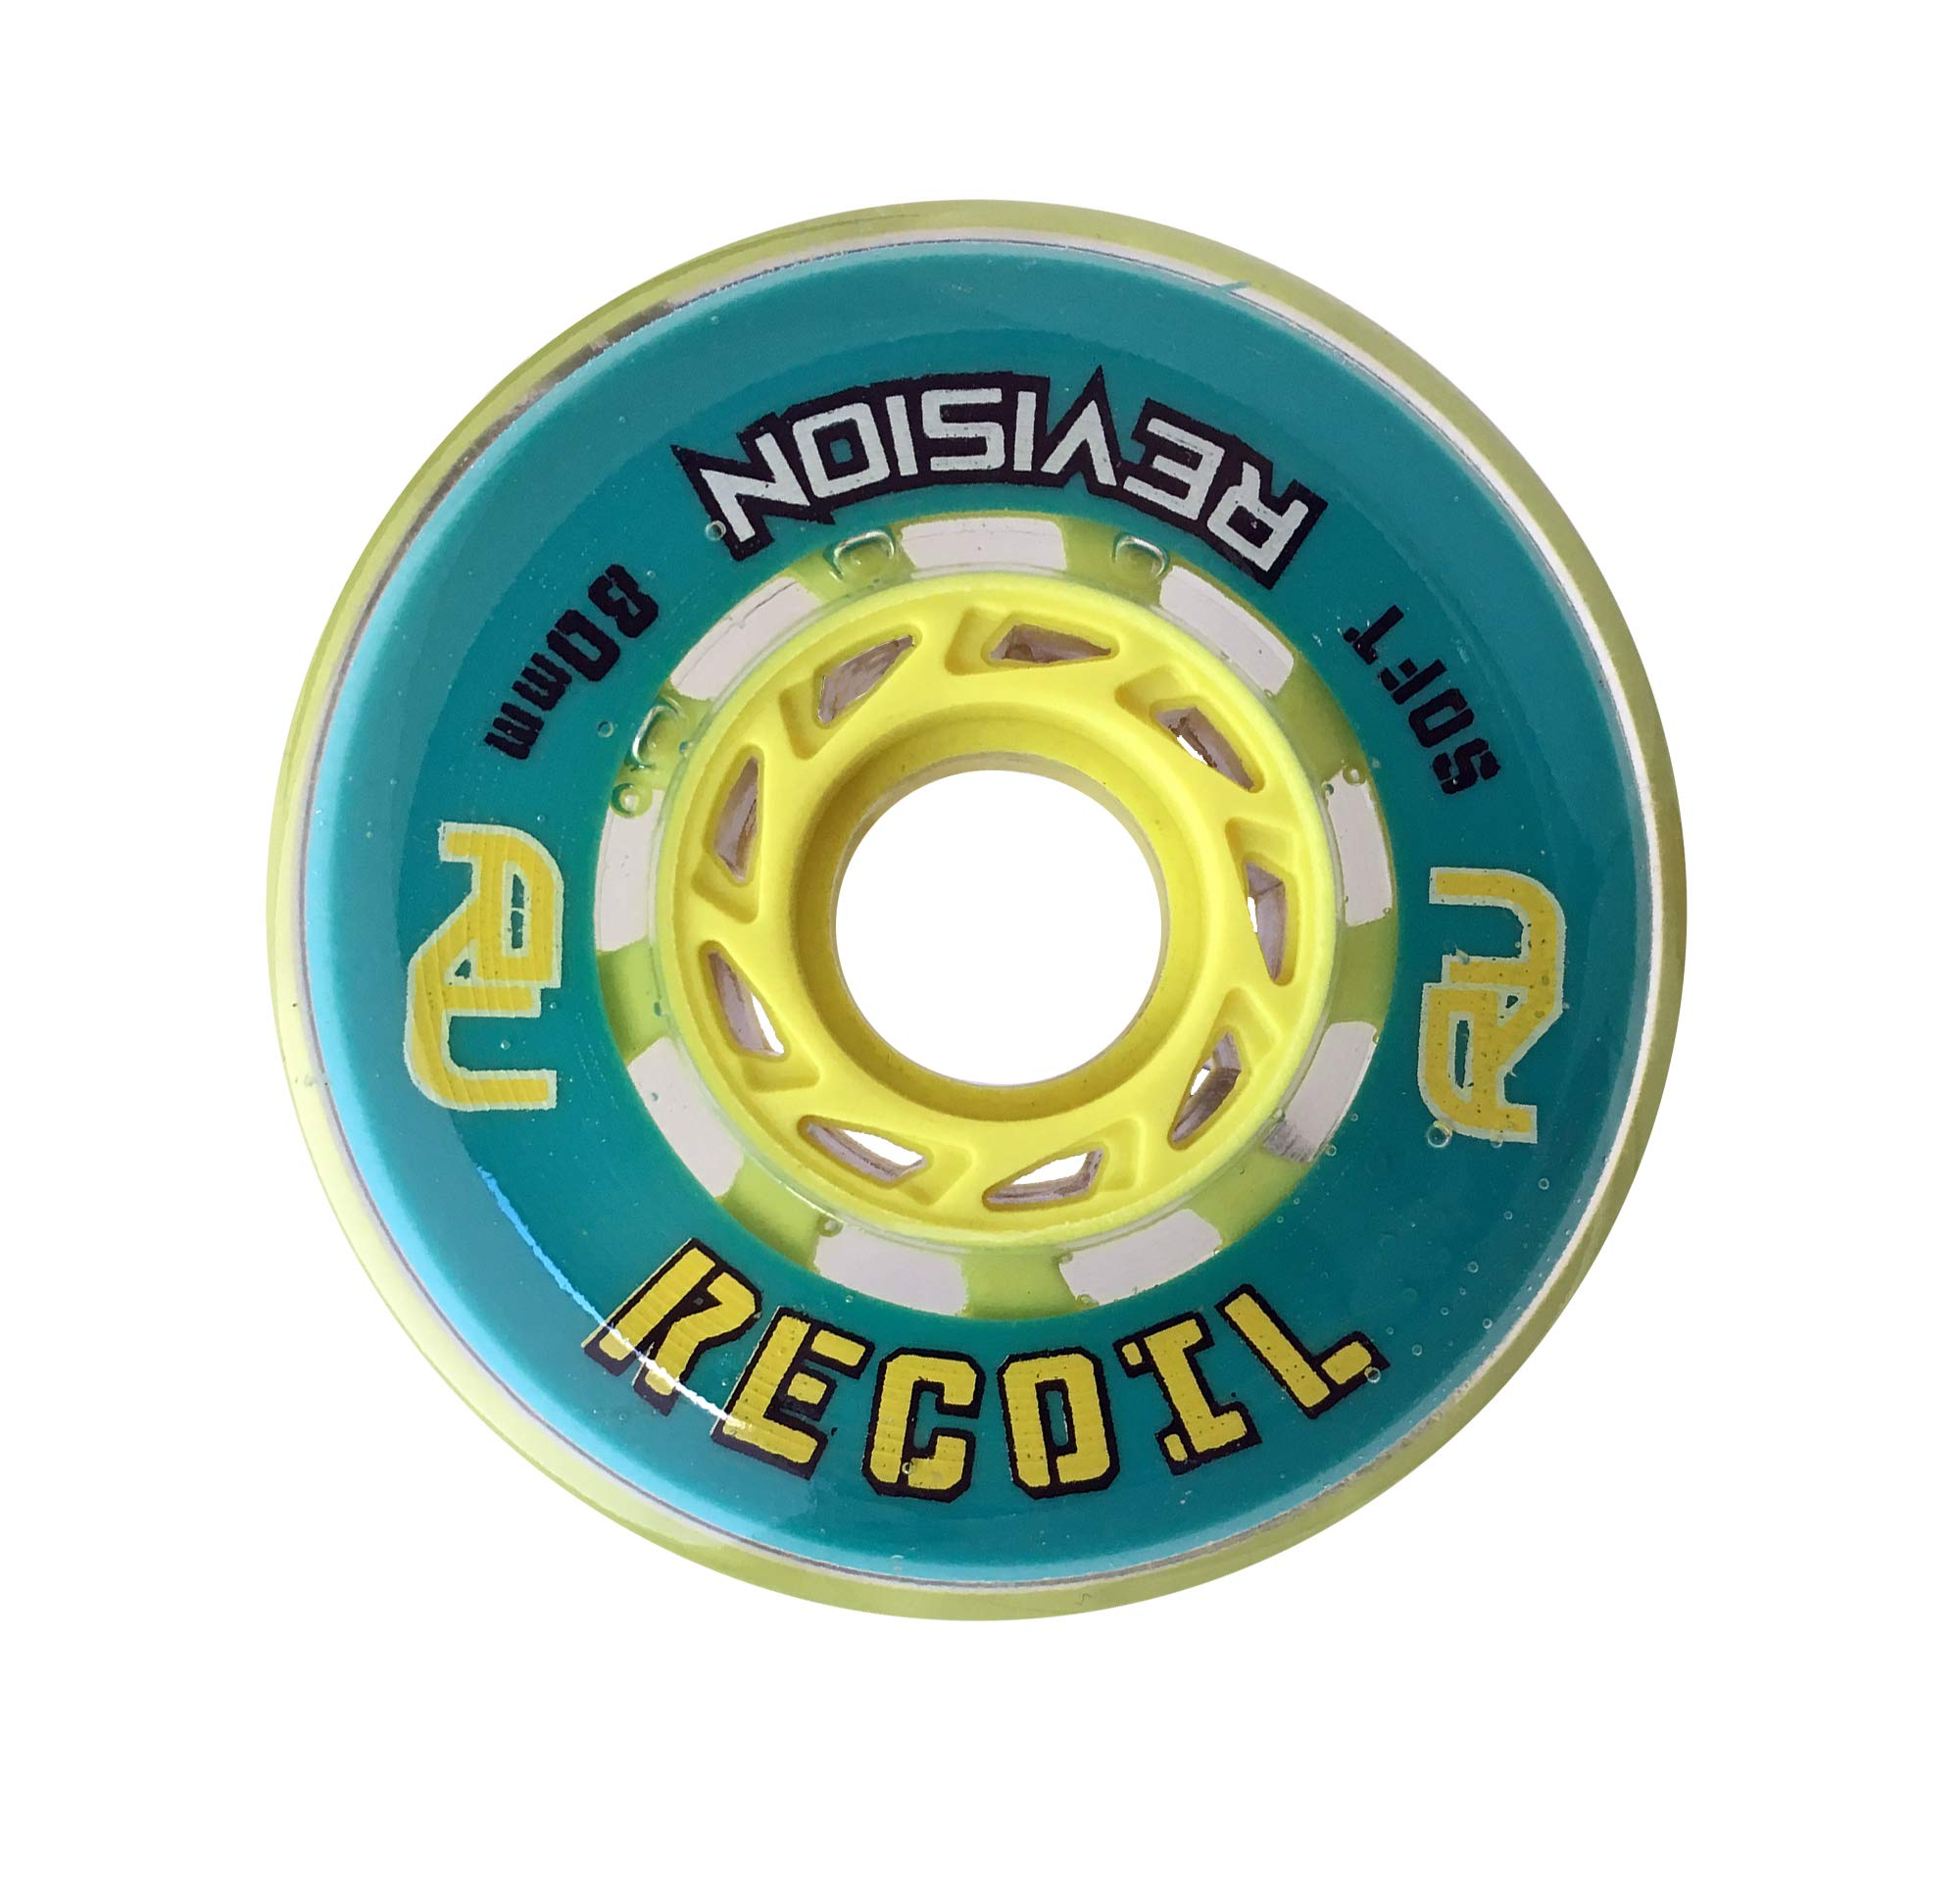 Revision Recoil Indoor Inline Roller Hockey Wheel - 74A - 80mm Soft - Teal & Yellow by Revision Hockey